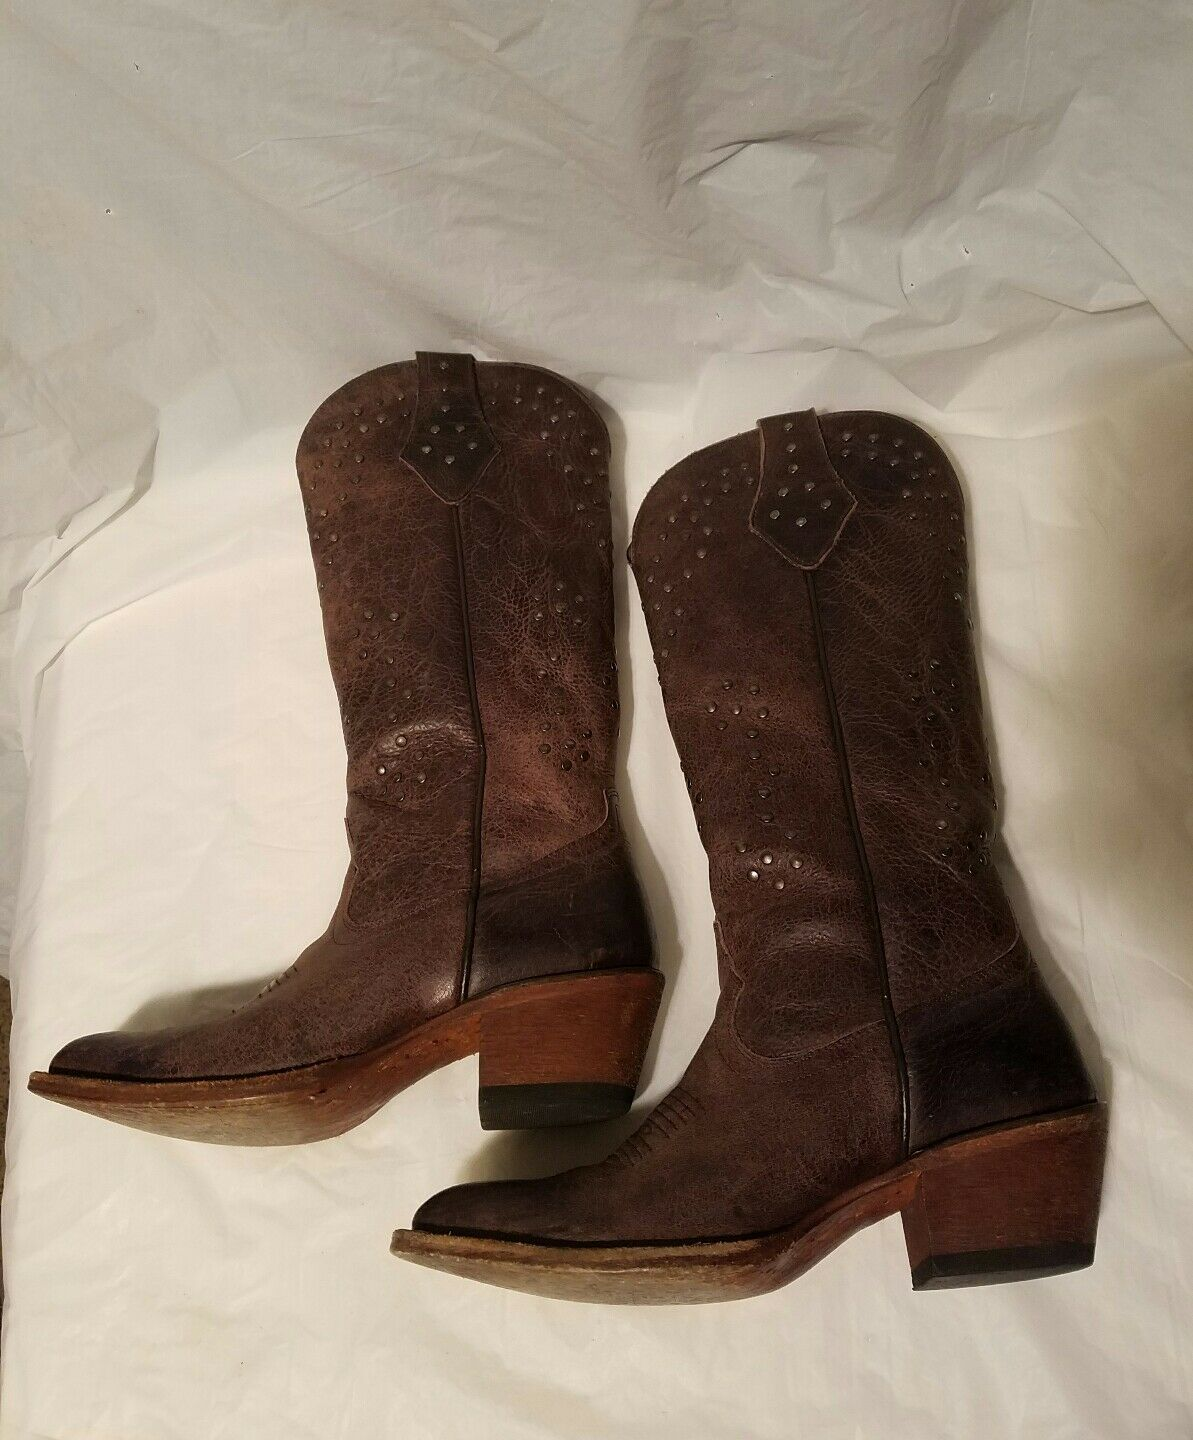 Womens Shyanne Almond Toe Studded boots size 6.5 brown 2.25 2.25 2.25 inch heel 8447bb